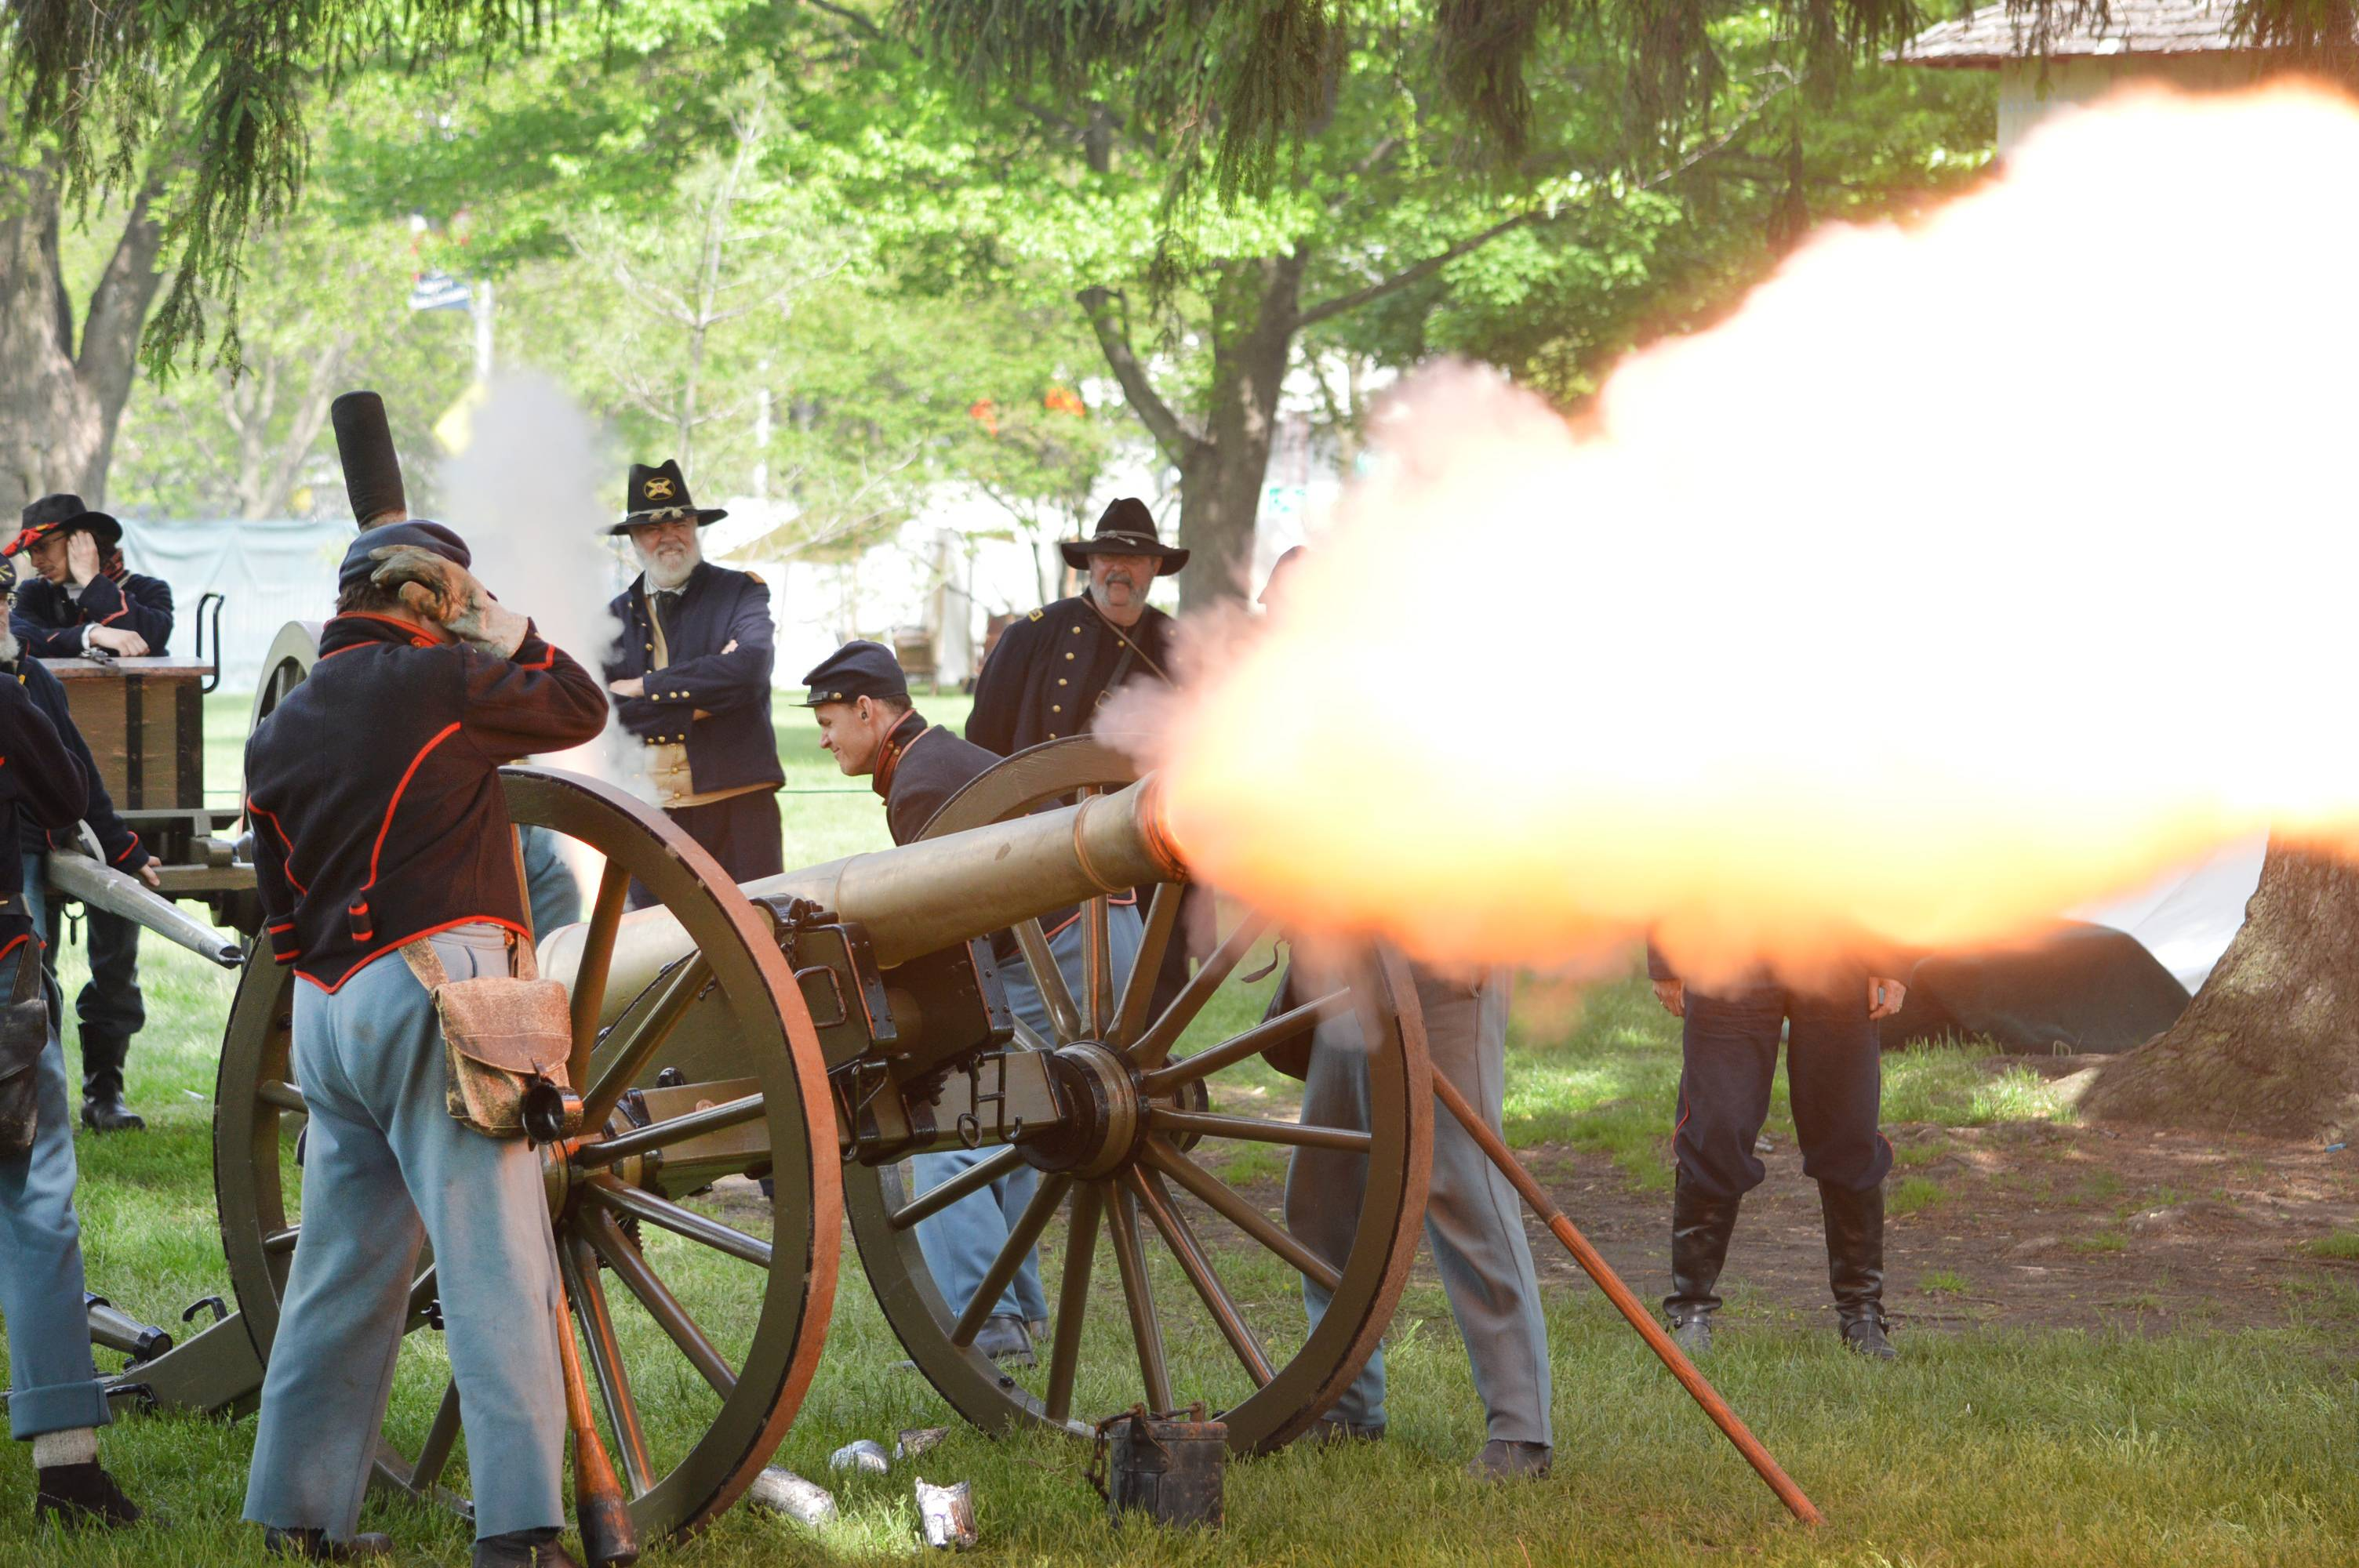 Watch staged battles during Civil War Days Saturday and Sunday, May 20-21, at Naper Settlement in Naperville.